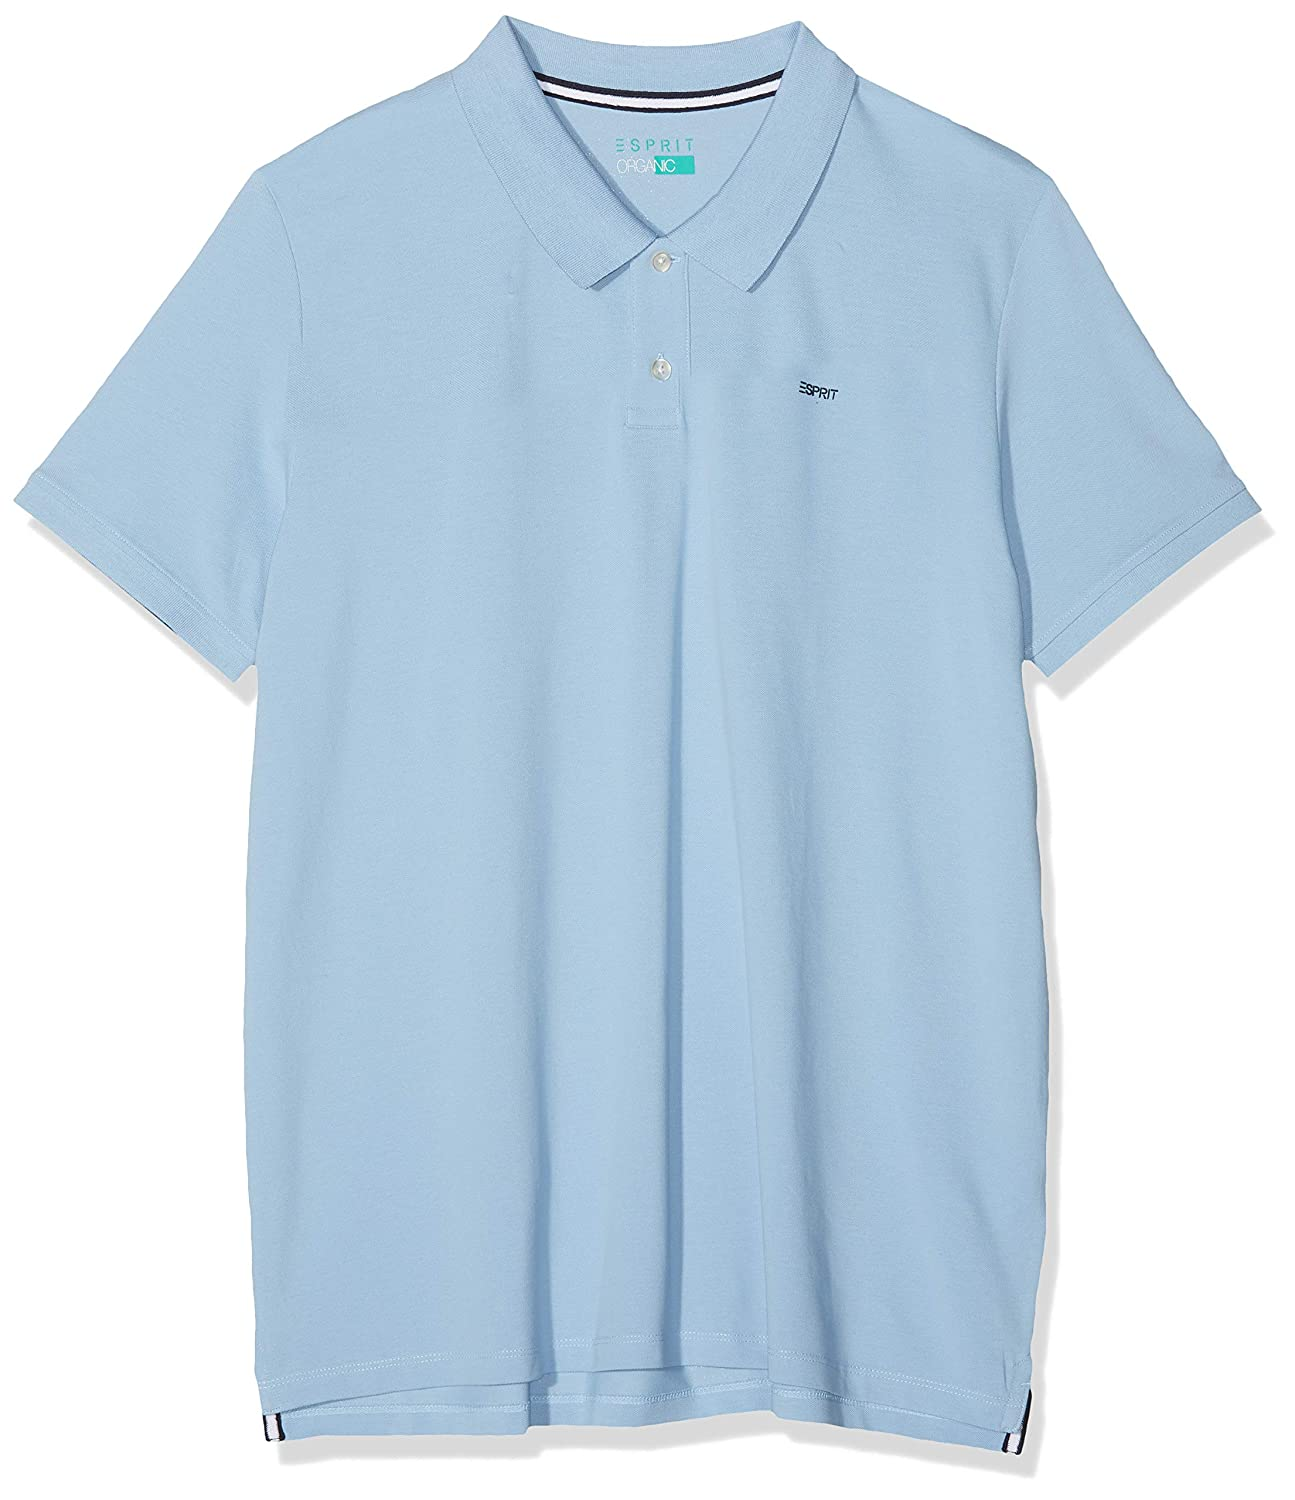 Esprit 069ee2k041 Polo, Azul (Light Blue 440), XXXX-Large para ...